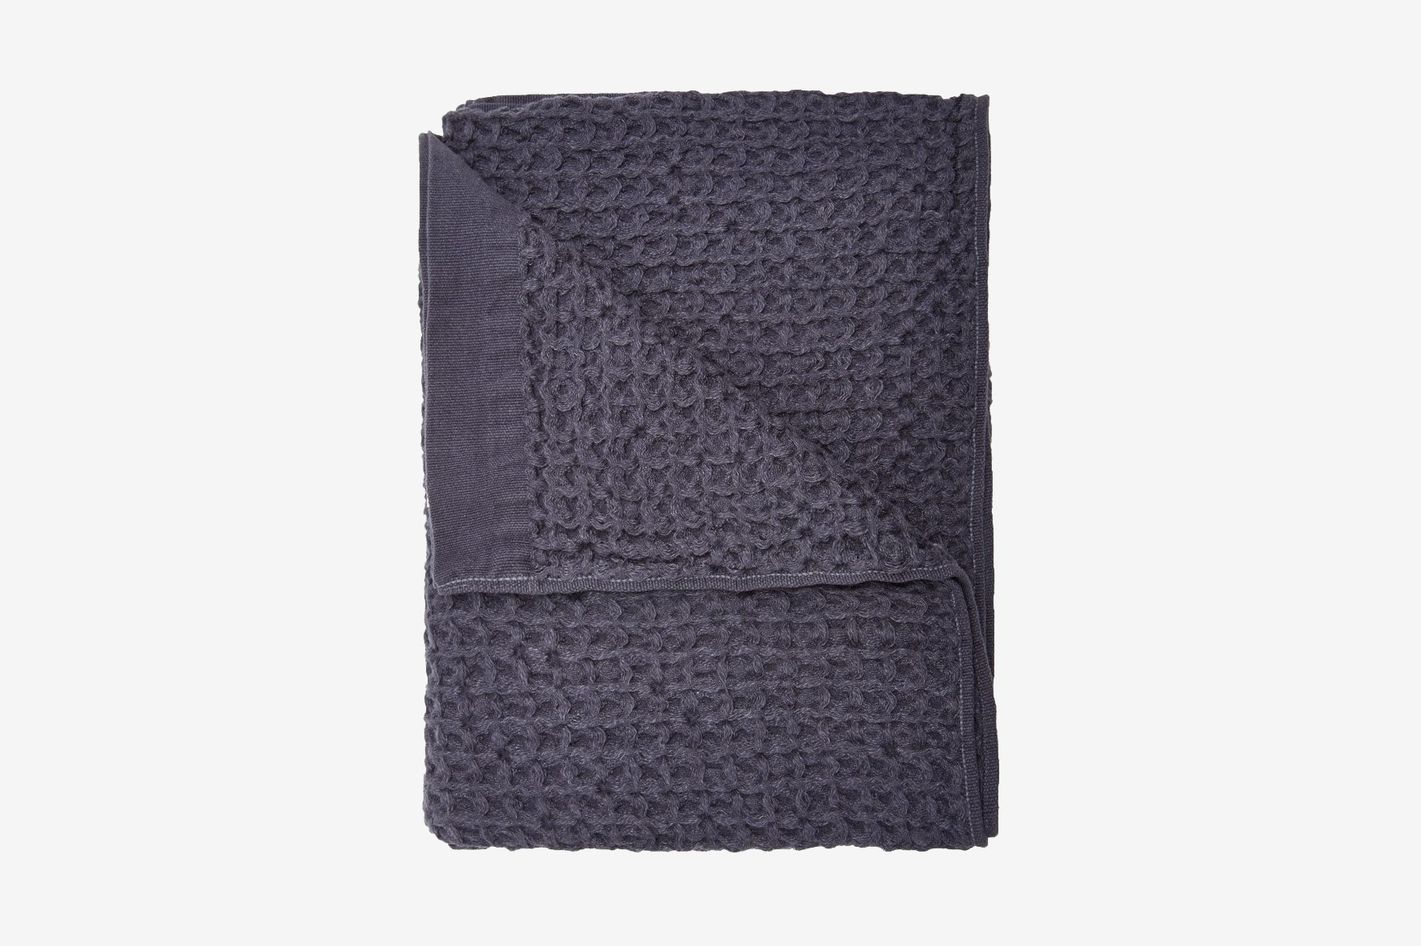 Morihata X-Large Lattice Bath Towel